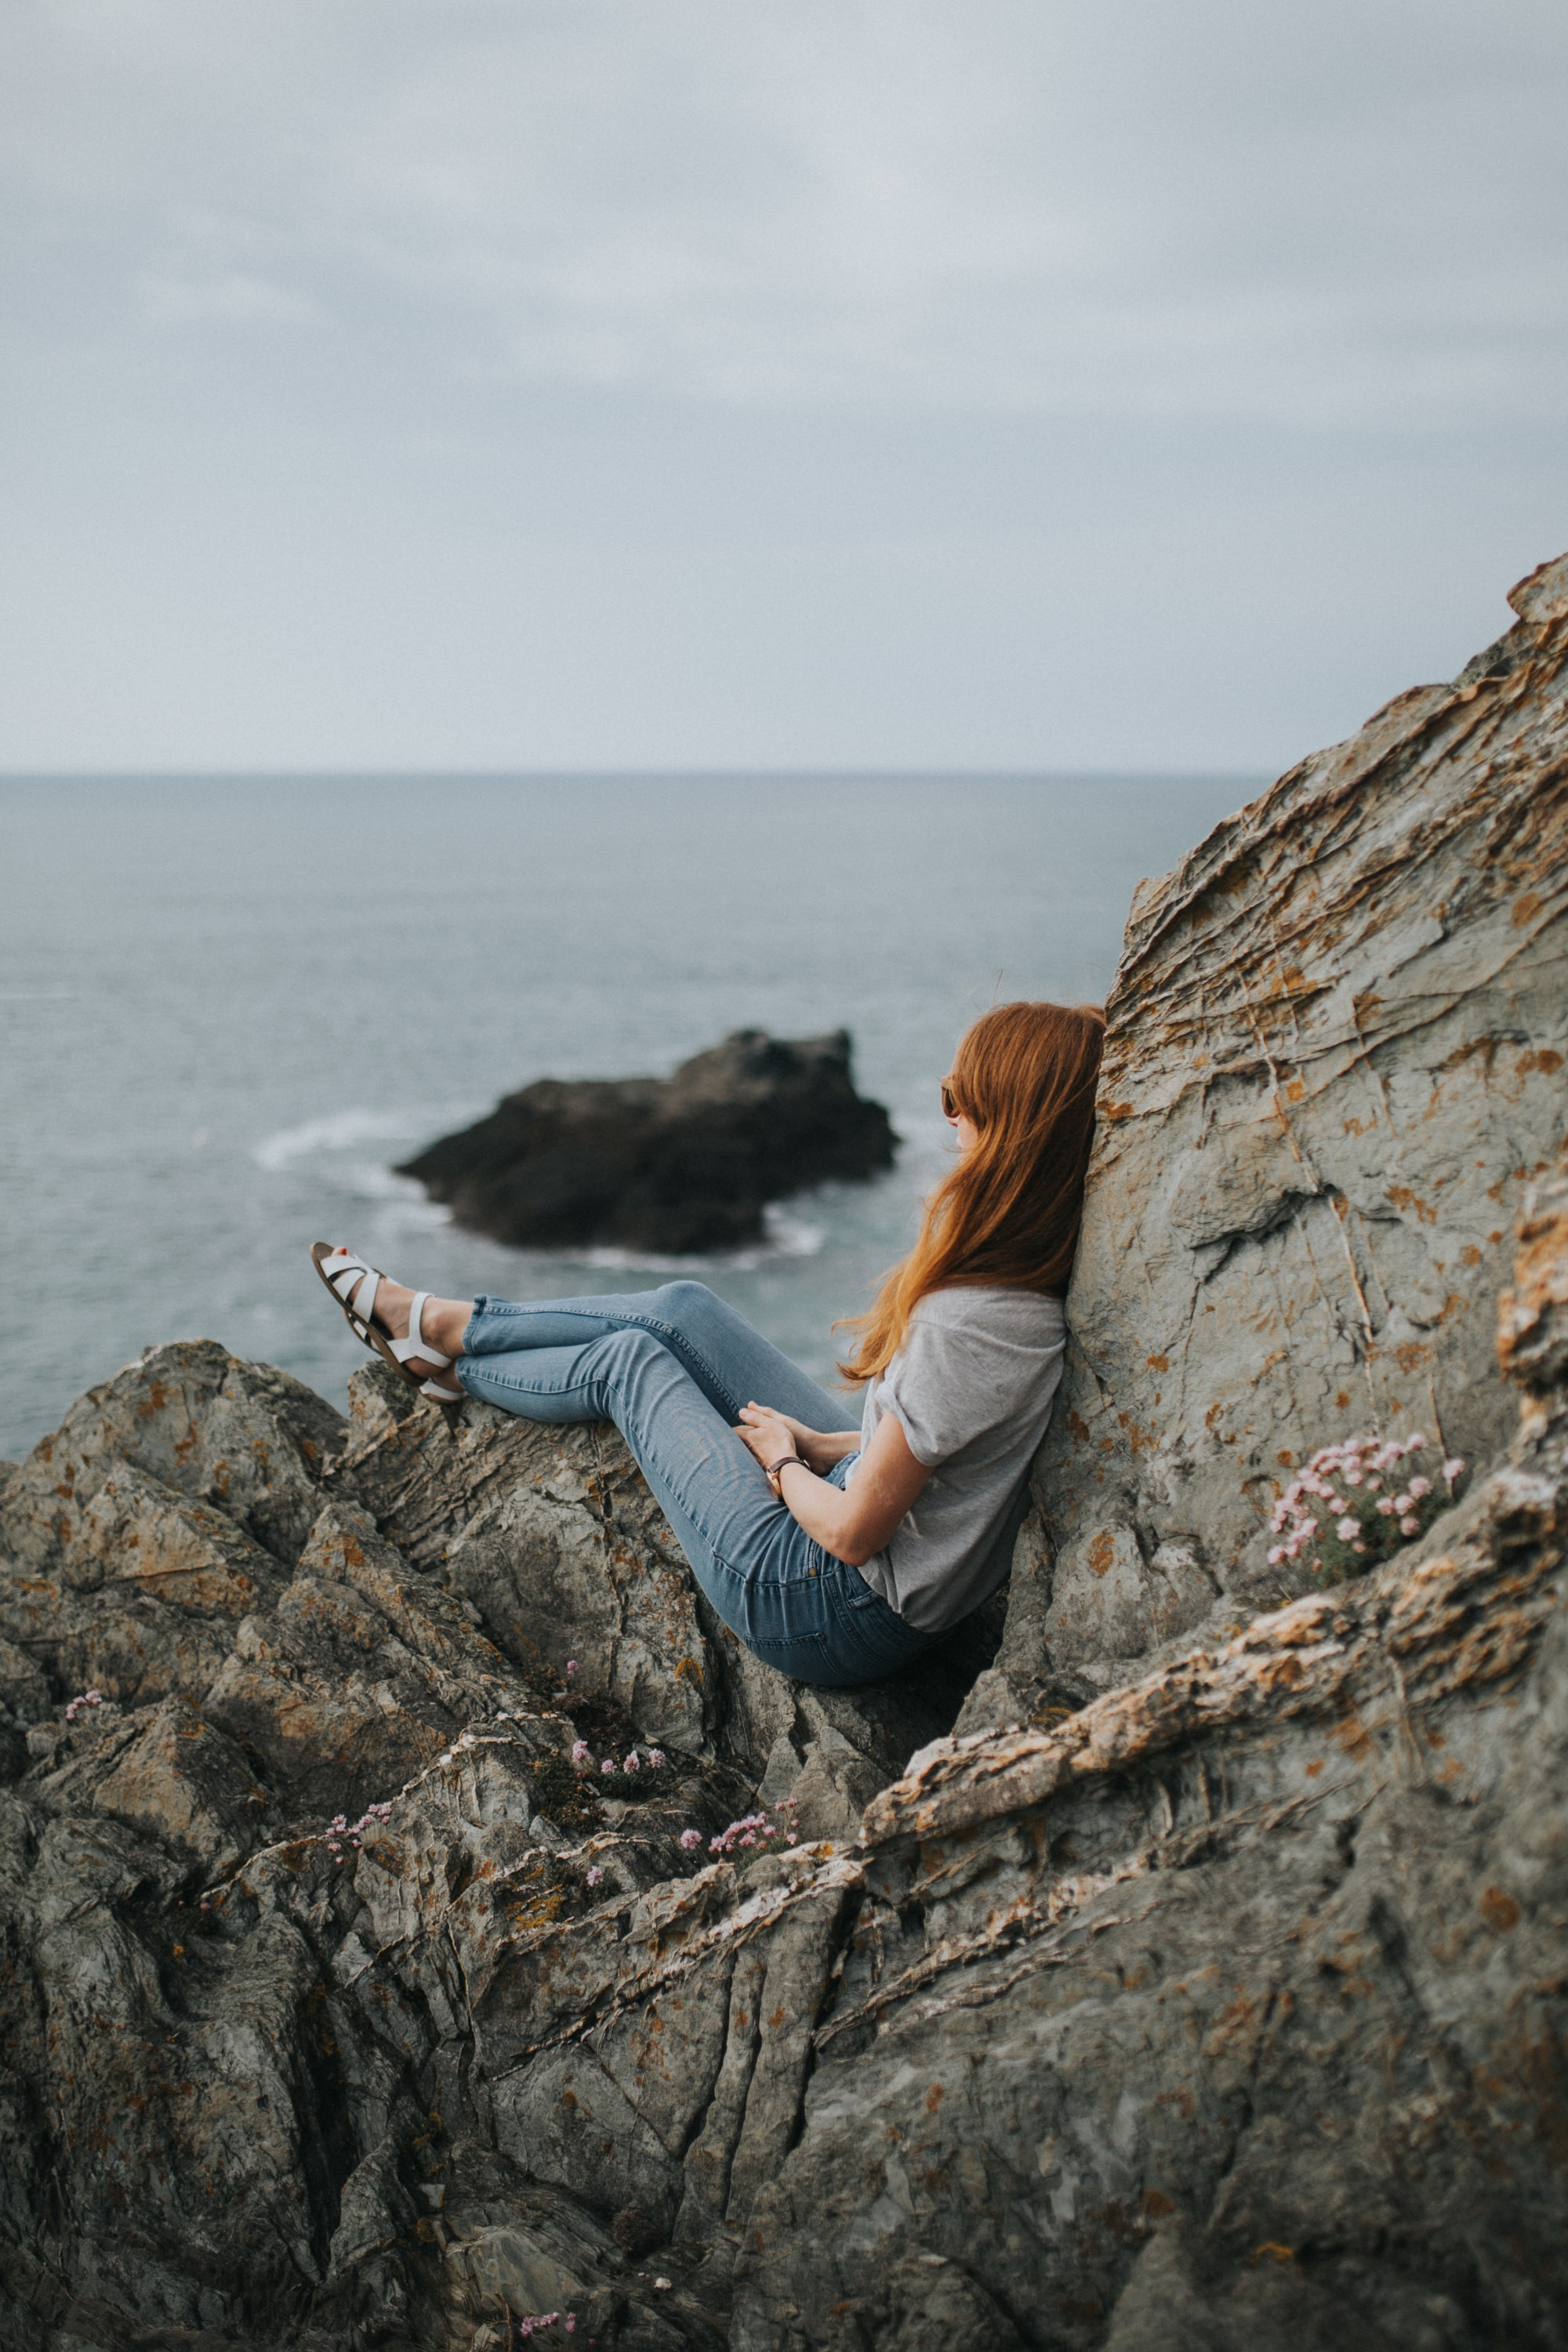 Woman in jeans and shirt sitting on coastline rocks at Fistral Beach